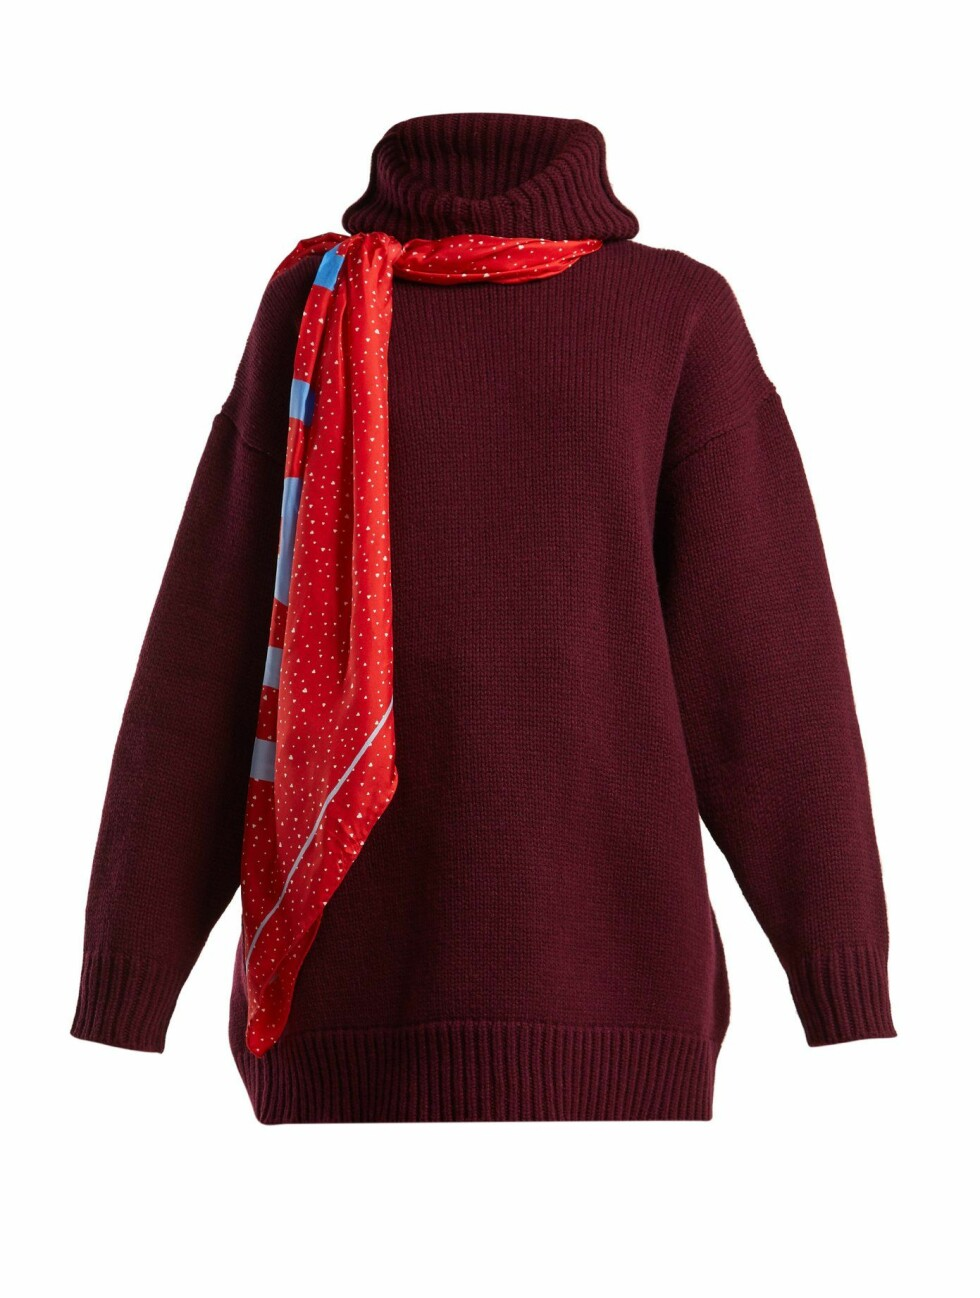 Balenciaga |10515,-| https://www.matchesfashion.com/intl/products/Balenciaga-Scarf-hooded-wool-sweater-1233062